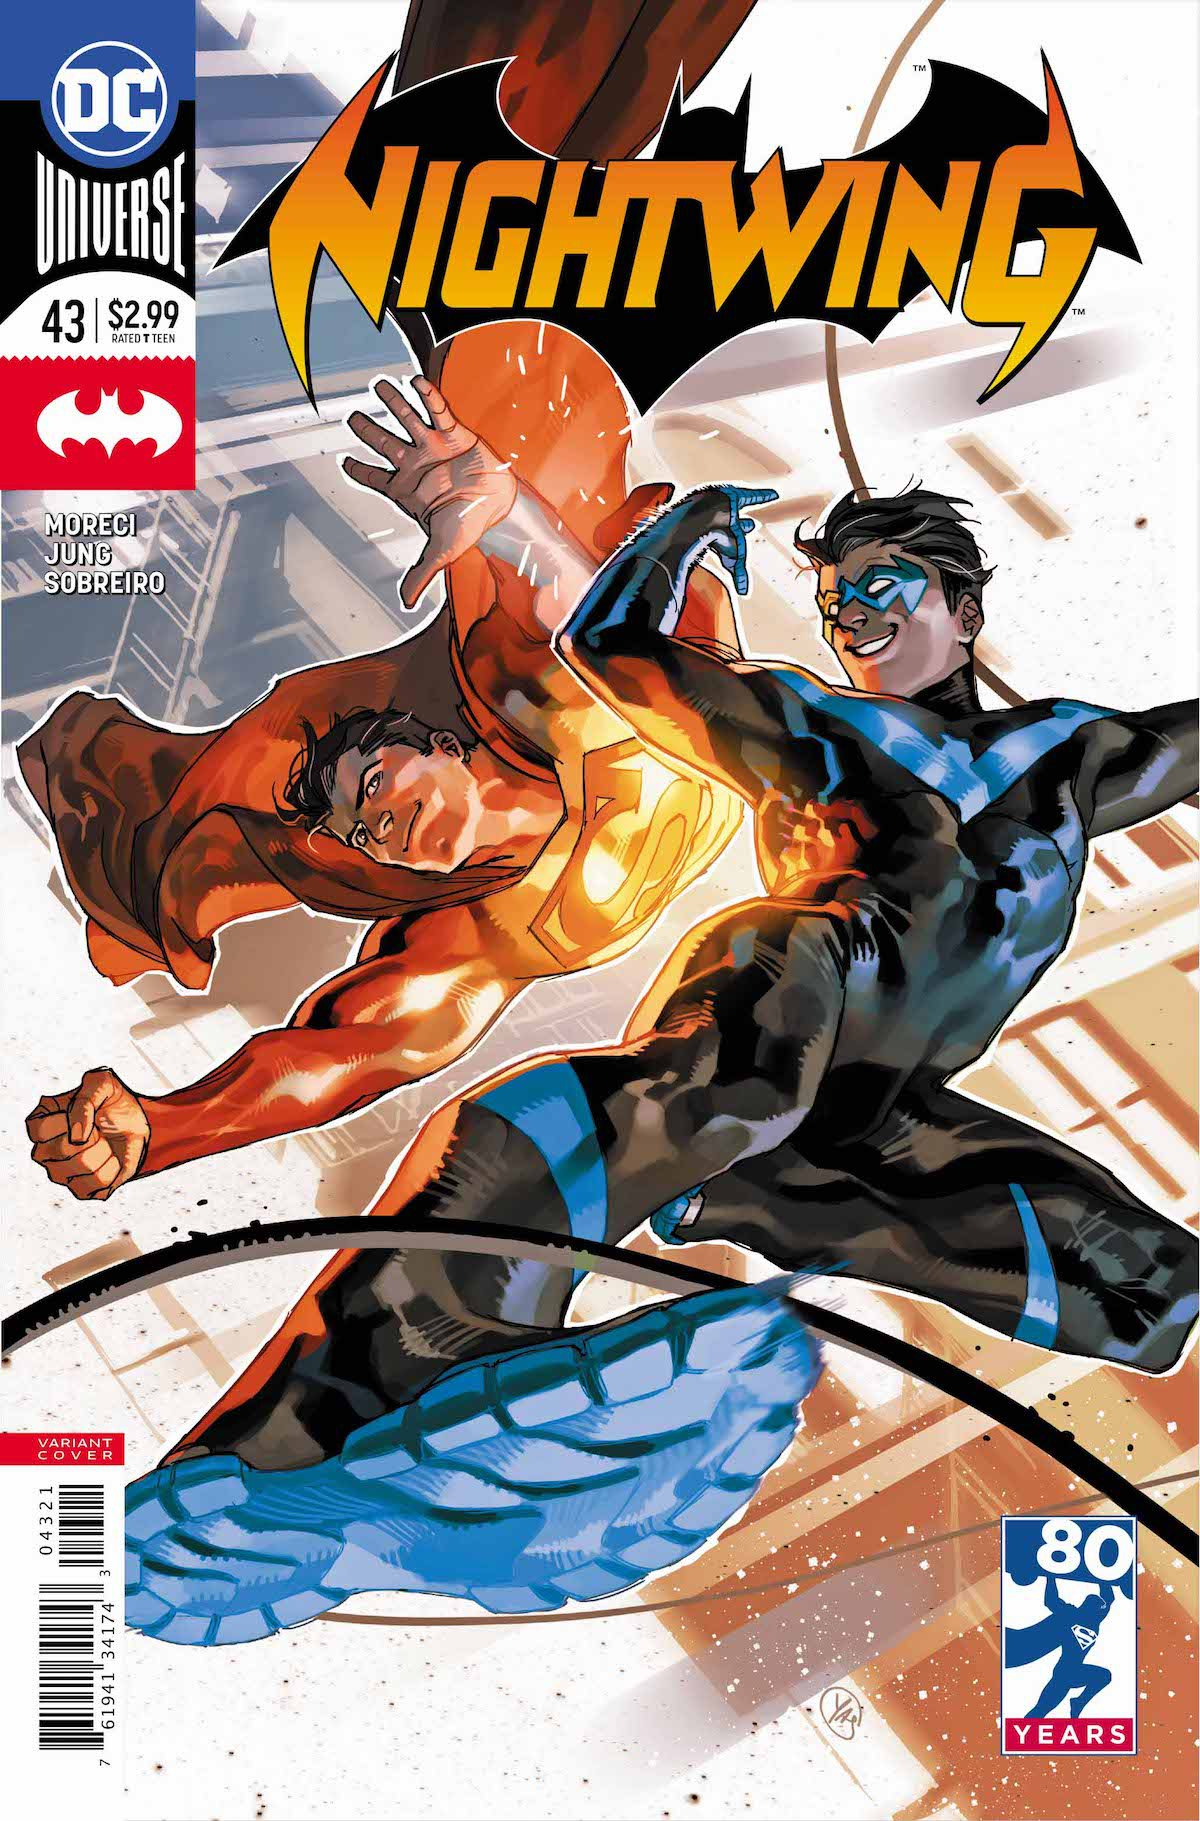 Nightwing #43 Superman variant cover